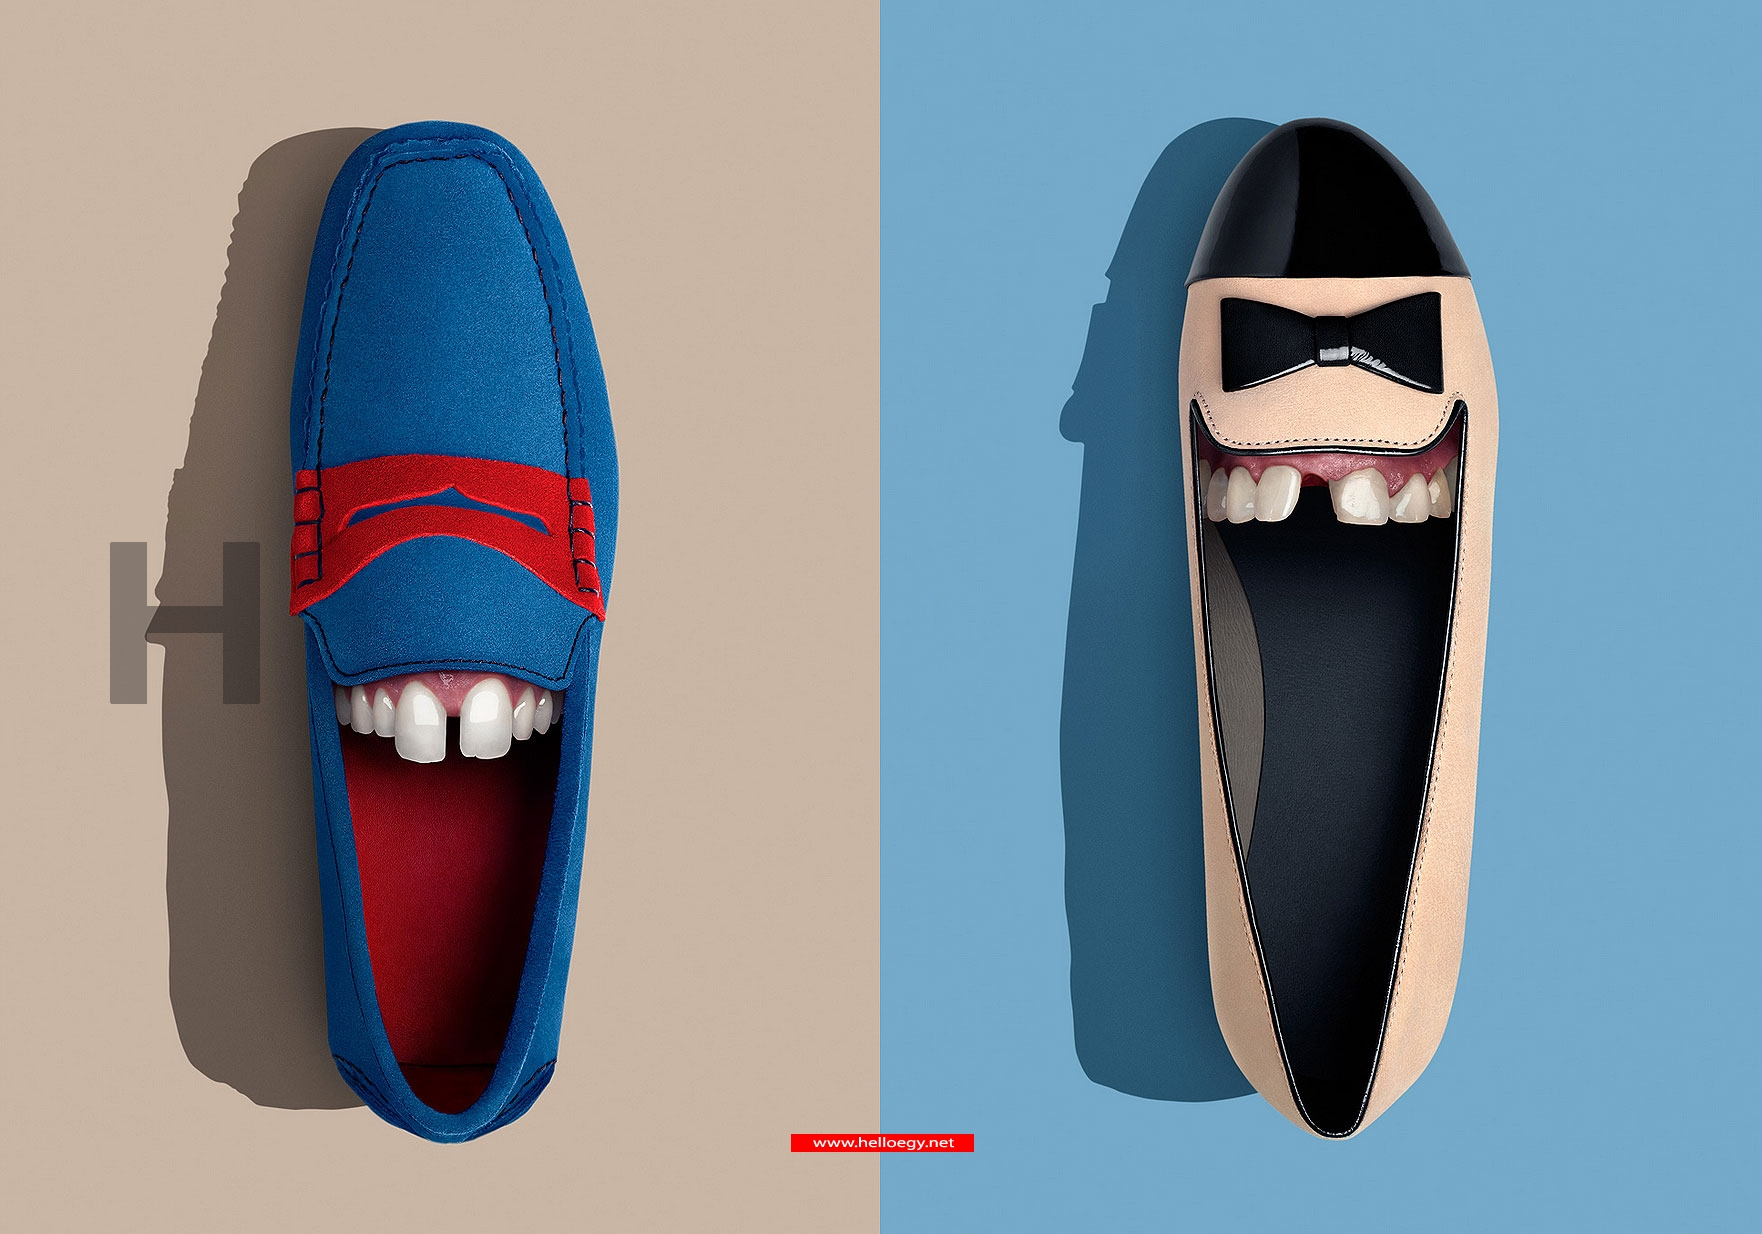 A New Fed .. Shoes with Teeth